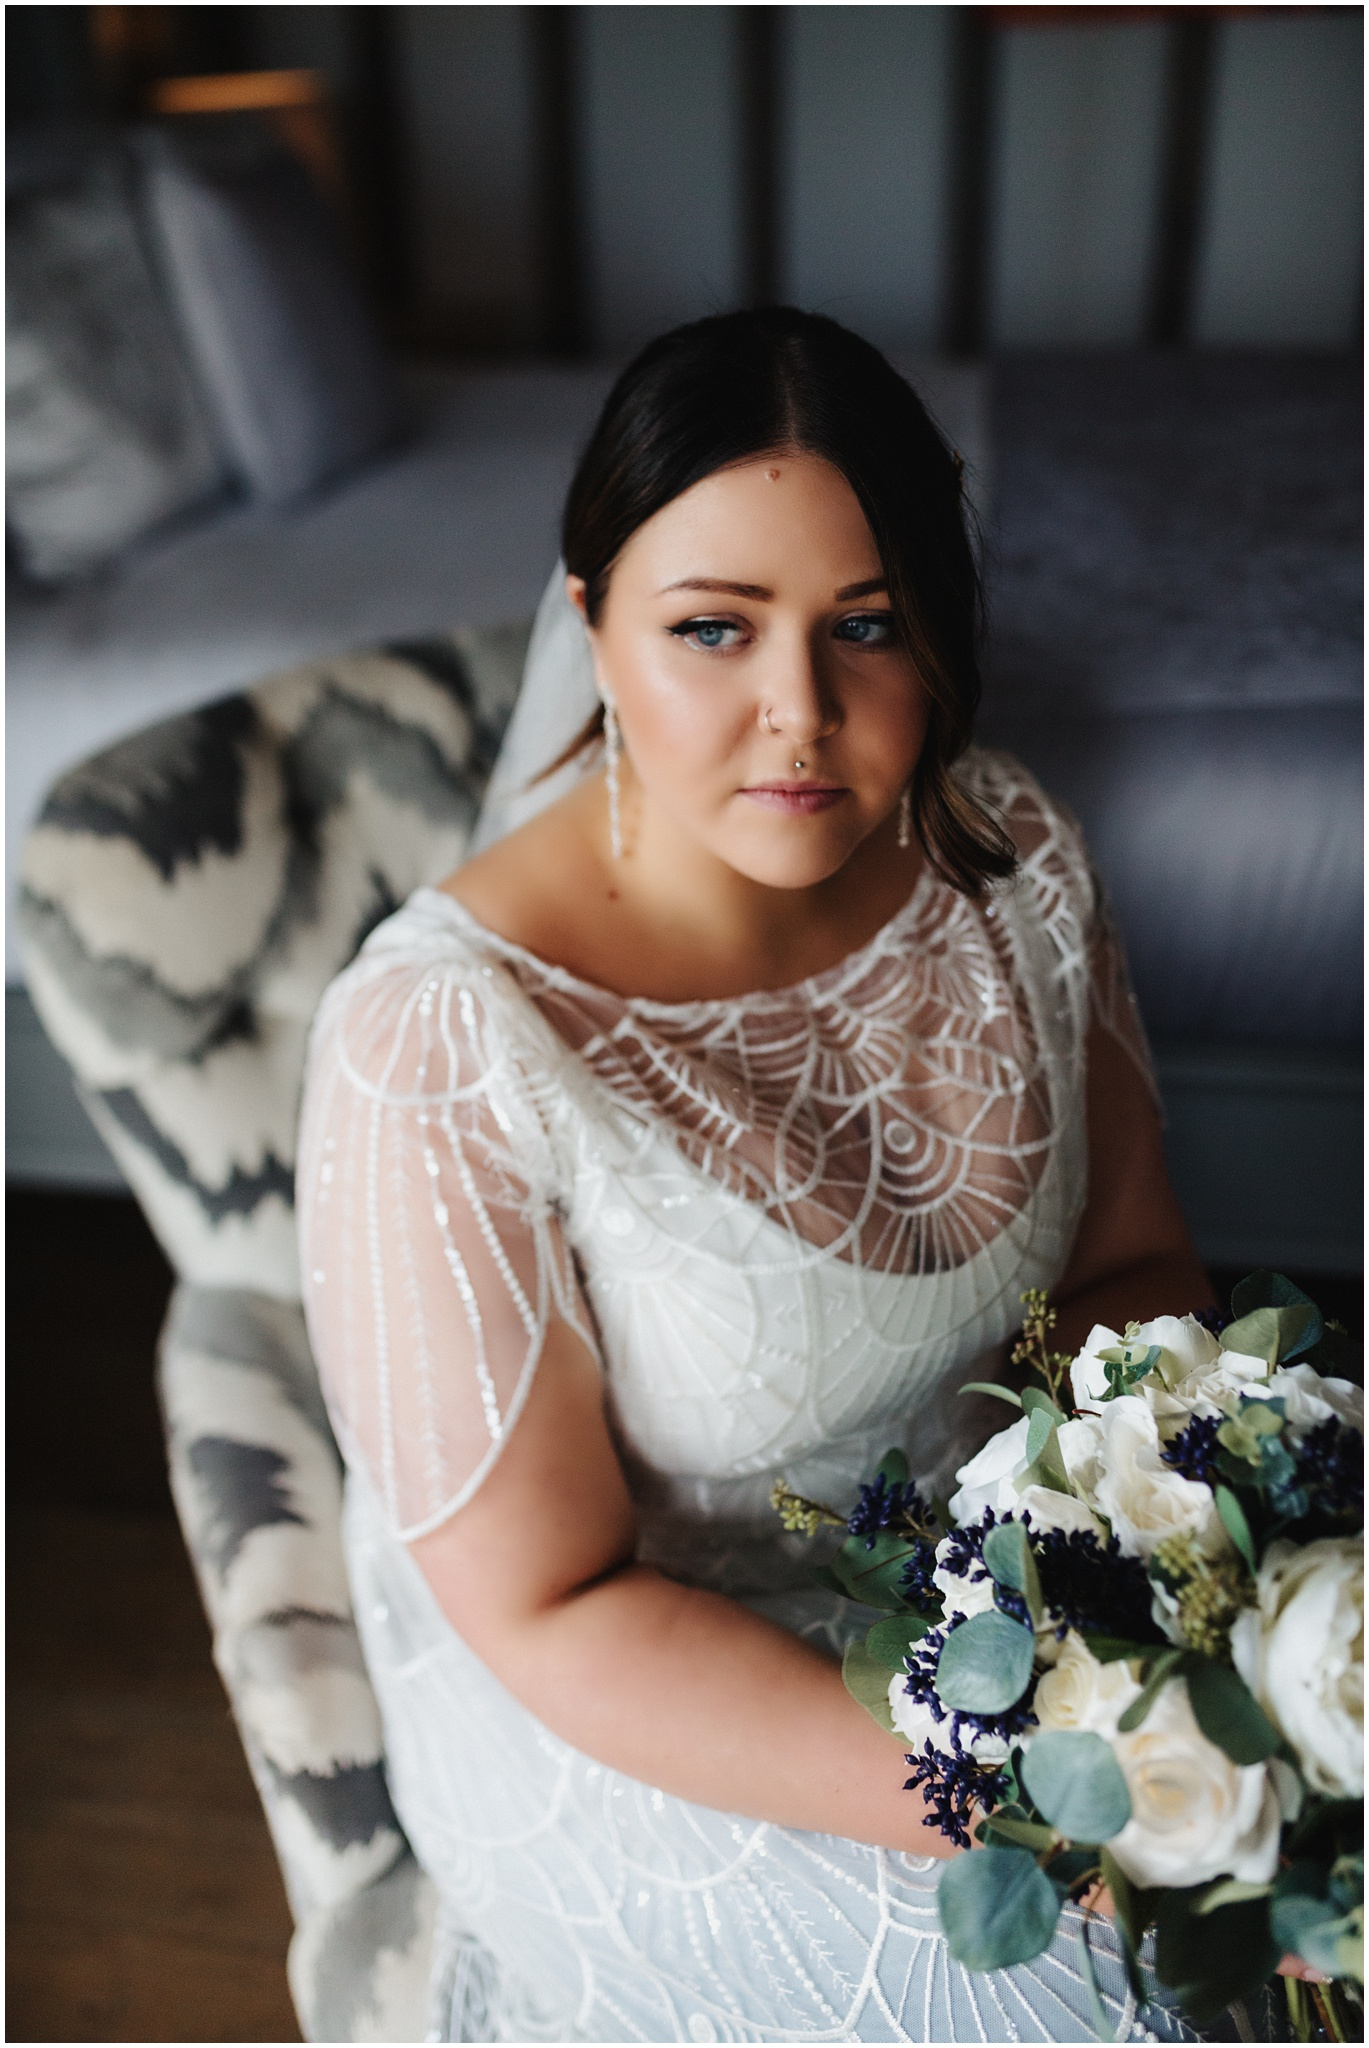 A portrait of the bride sitting down with her wedding flowers